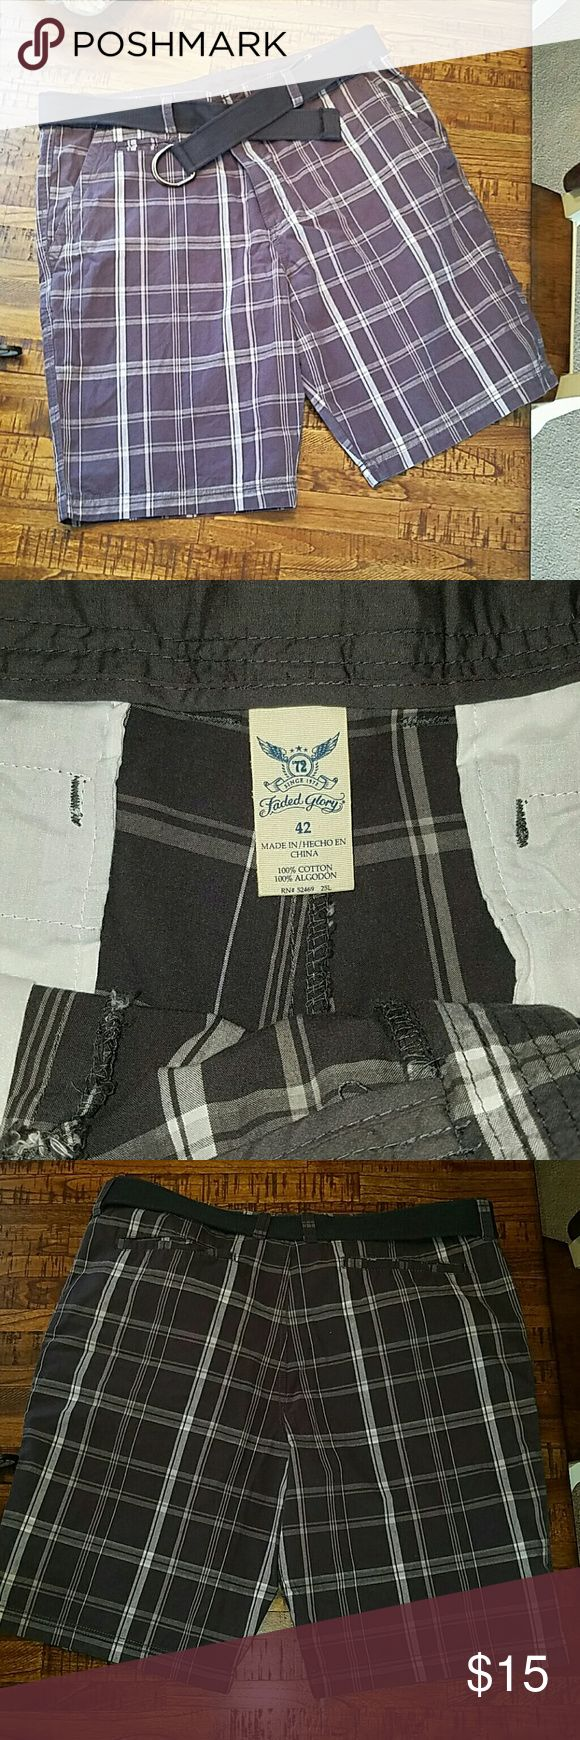 Men's plaid shorts with belt Men's dark grey plaid shorts with fabric black belt. Worn once. Faded Glory Shorts Flat Front